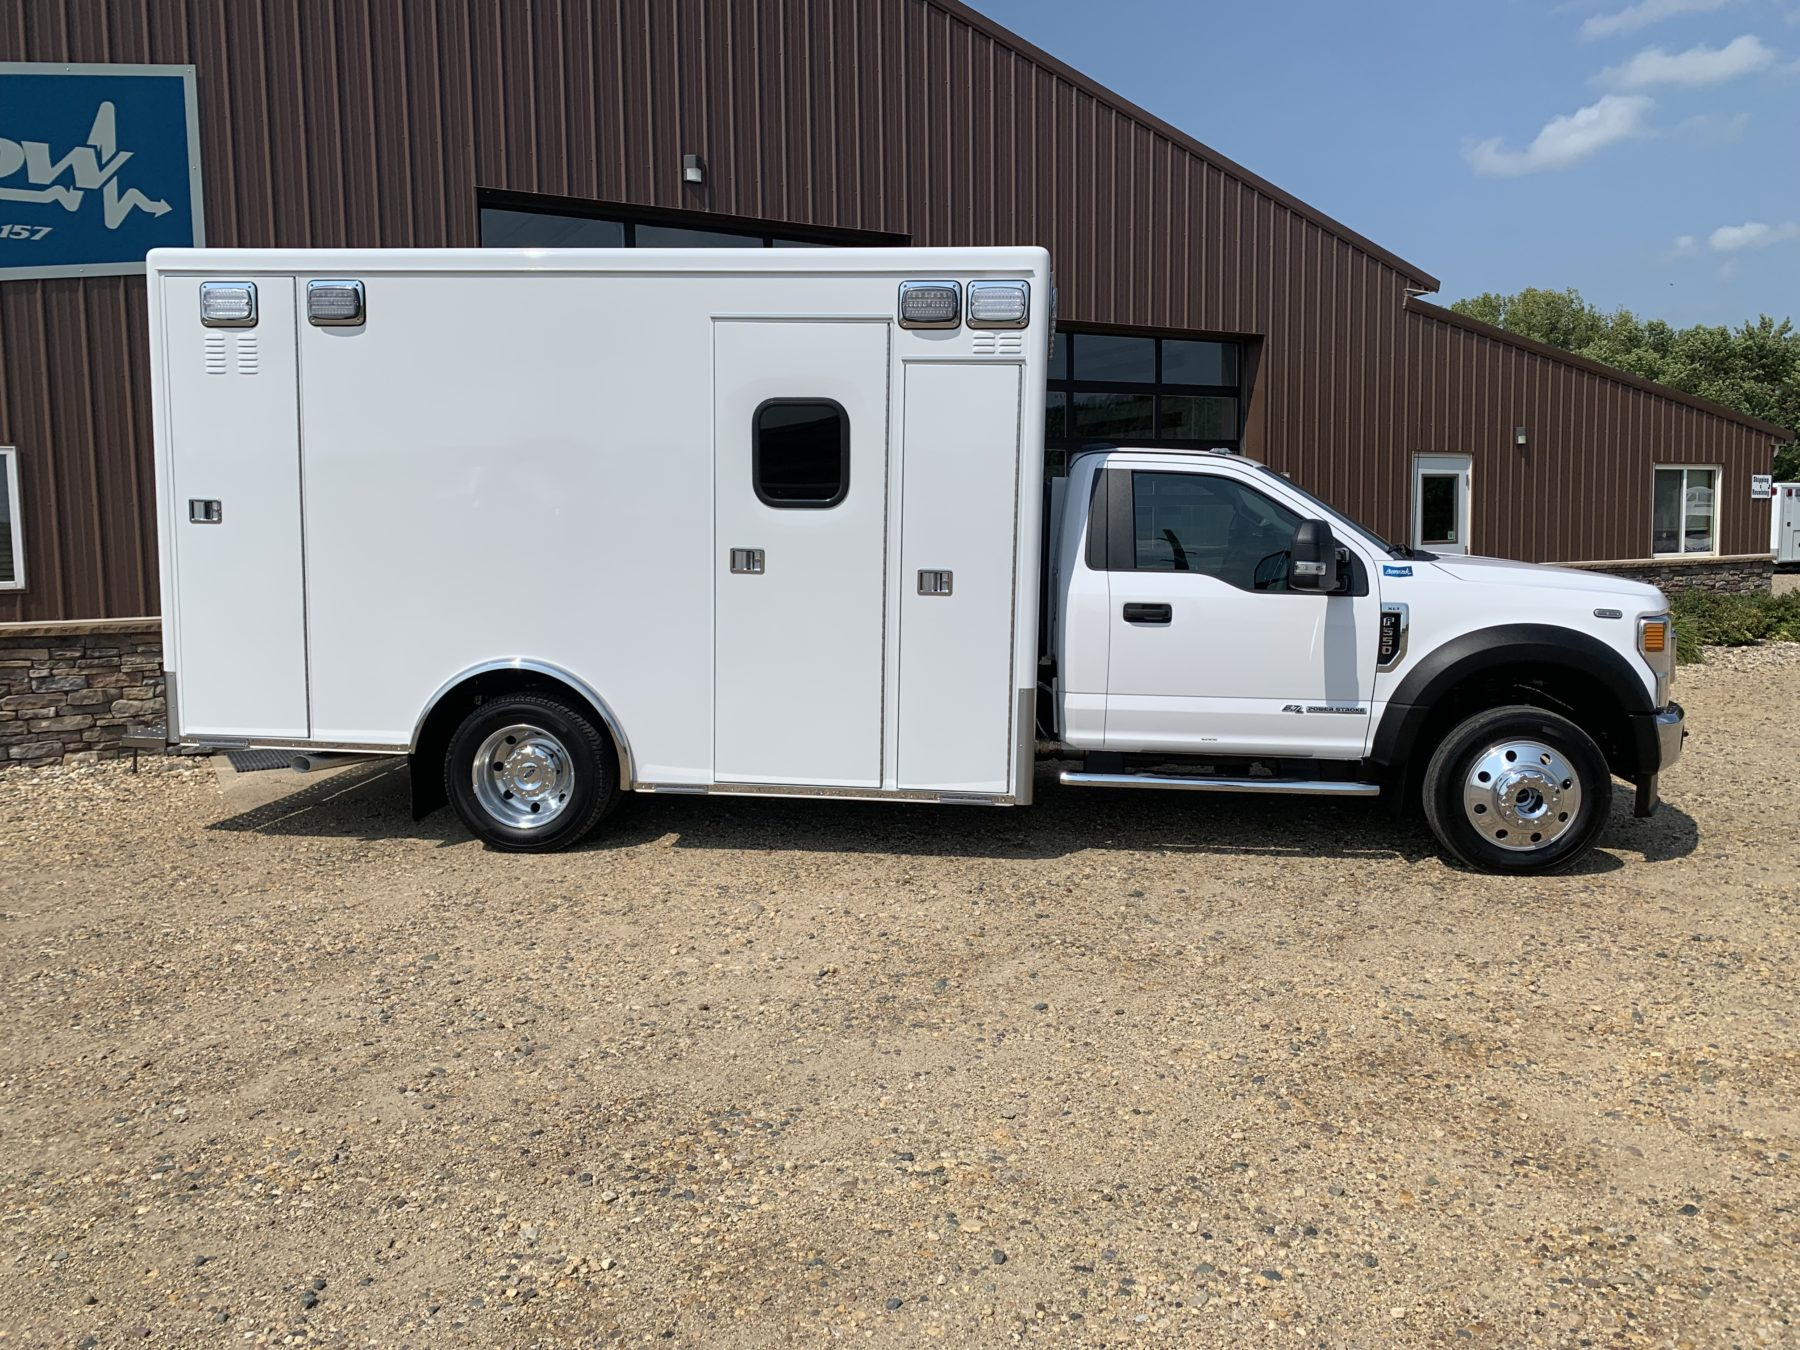 2021 Ford F550 4x4 Heavy Duty Ambulance For Sale – Picture 8